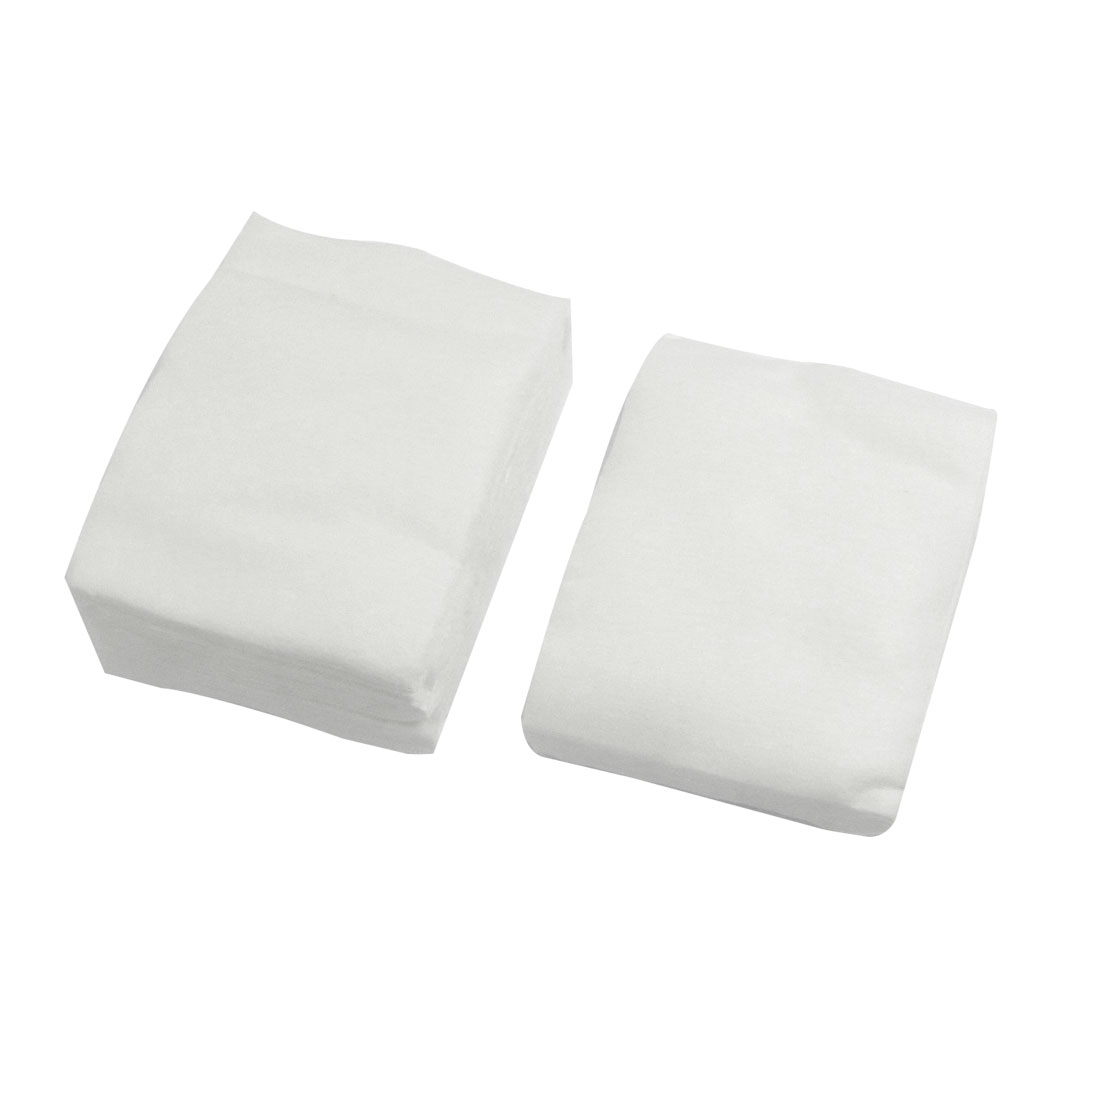 80 Pcs Cosmetic Makeup Tool White Soft Pad Non-woven Cotton Facial Puffs for Women Lady